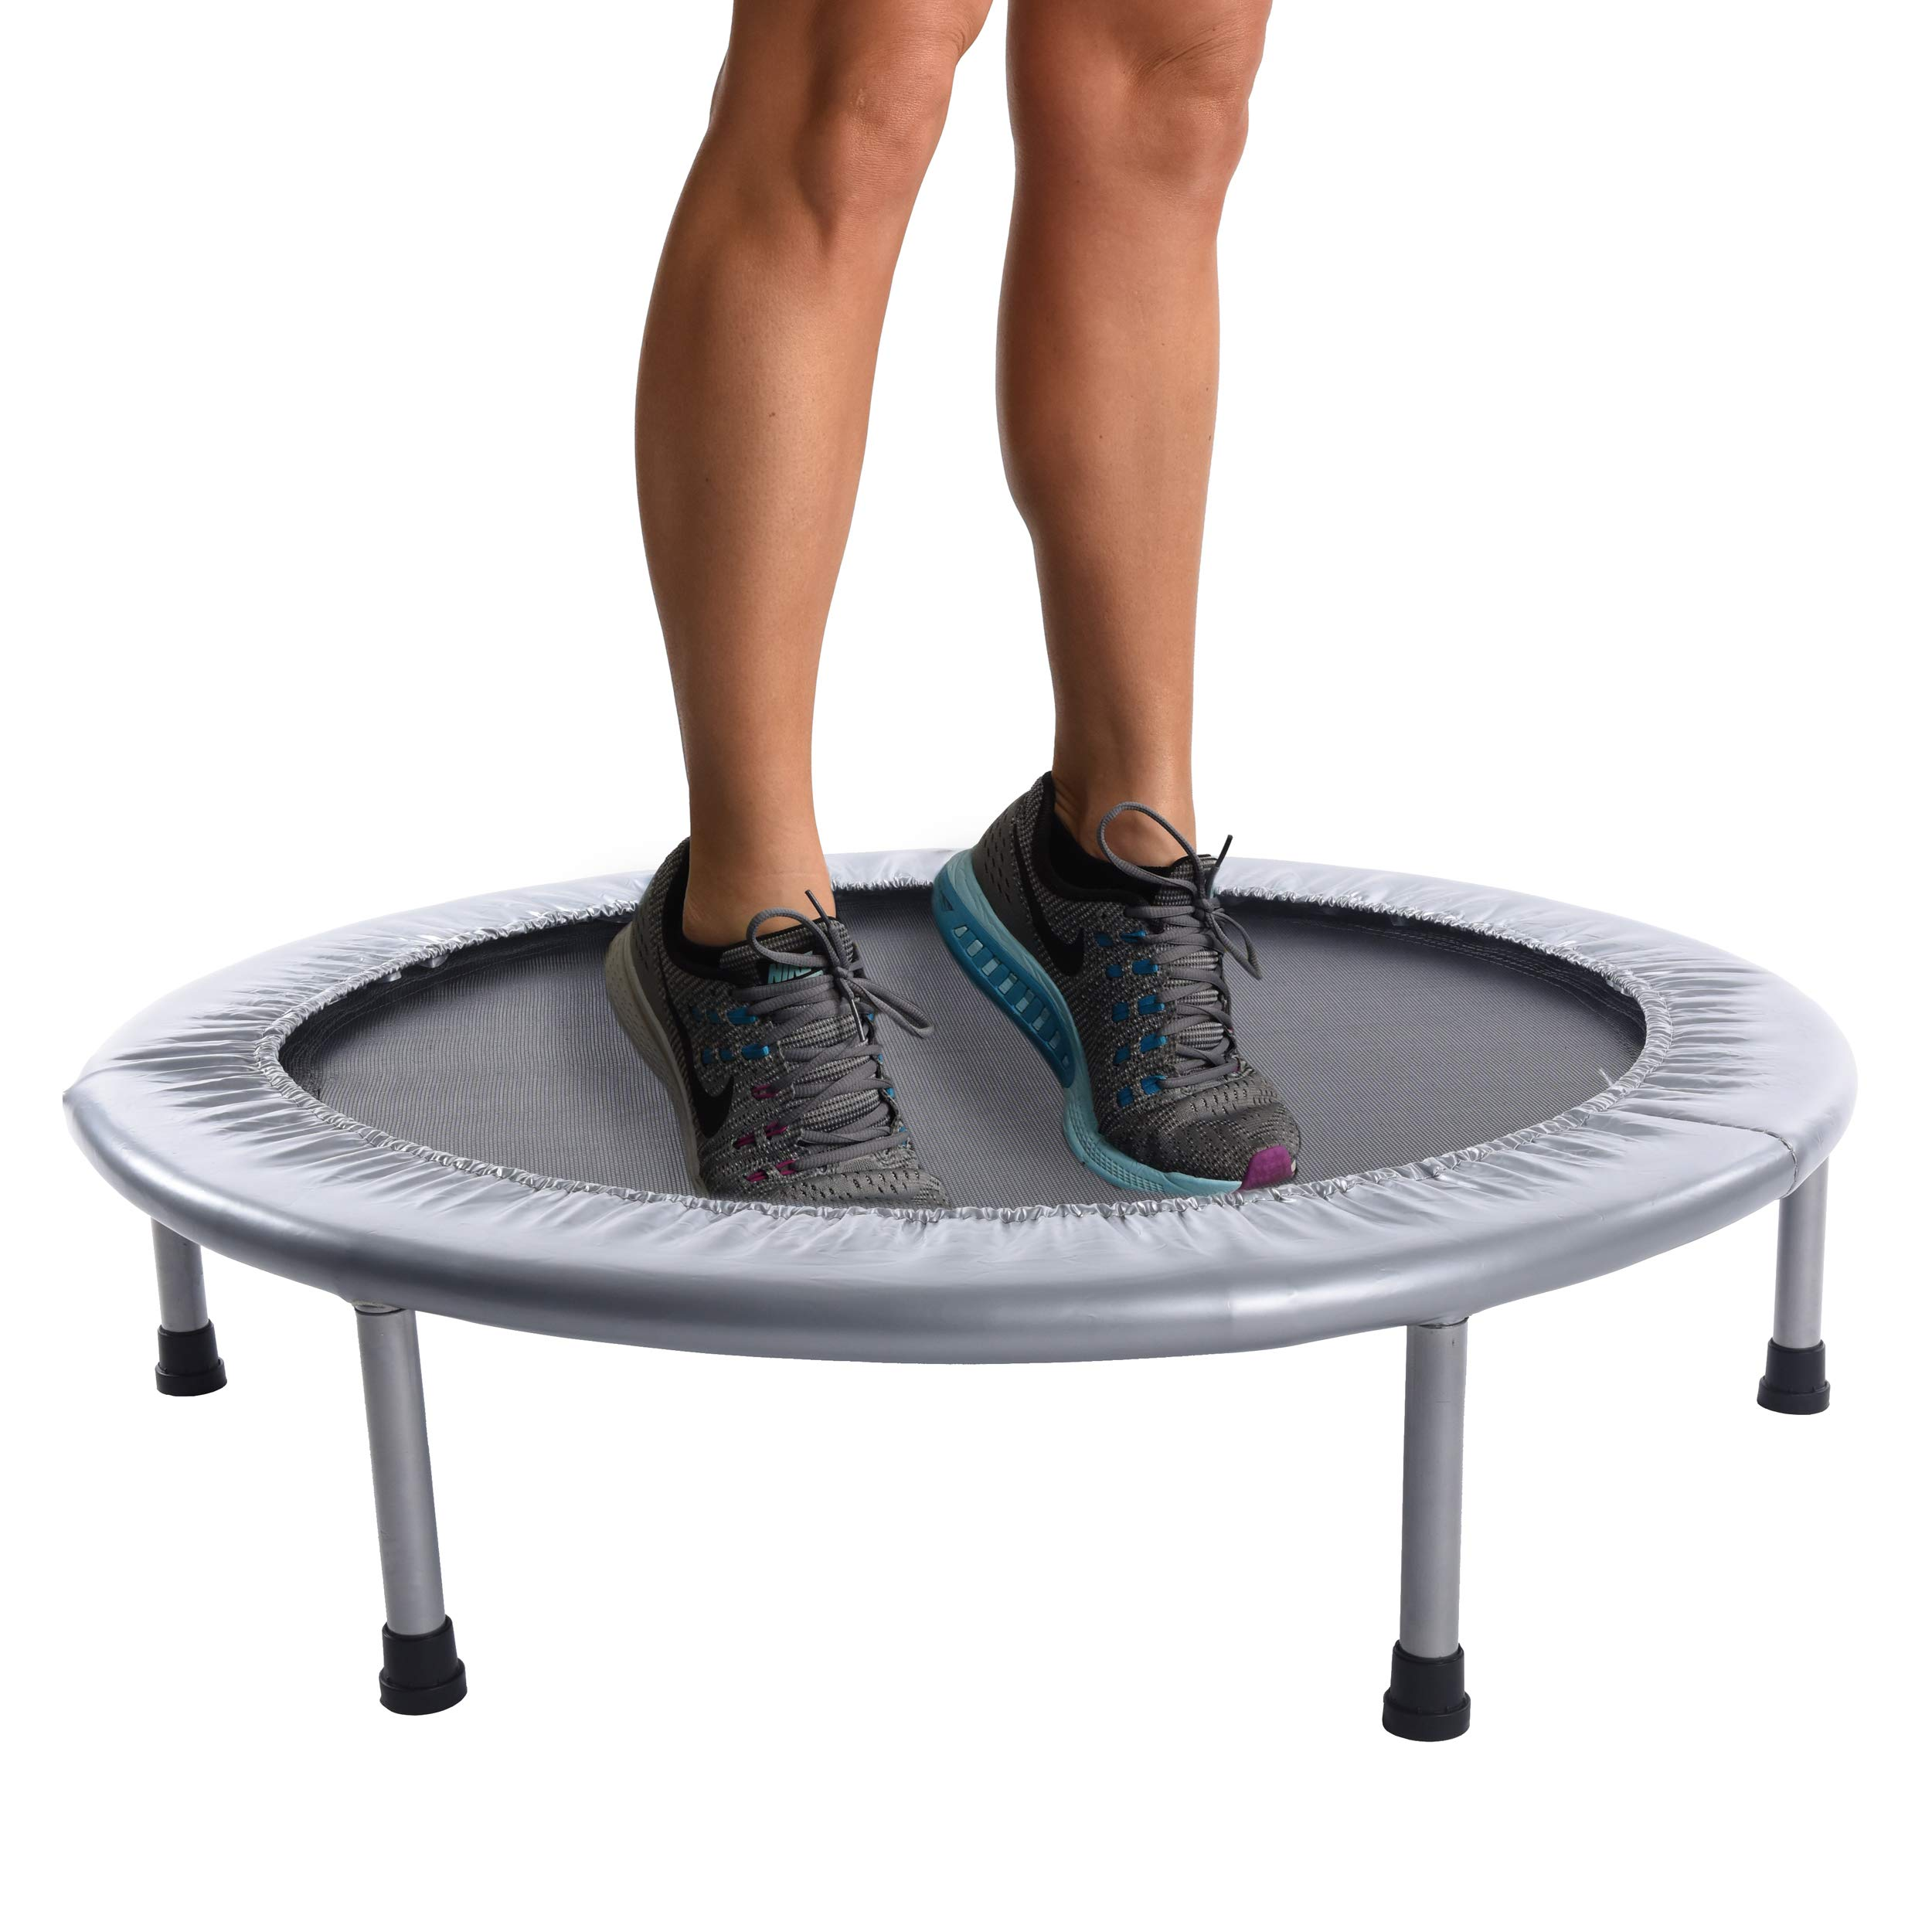 Stamina 36-Inch Folding Trampoline | Quiet and Safe Bounce | Access To Free Online Workouts Included | Supports Up To 250 Pounds by Stamina